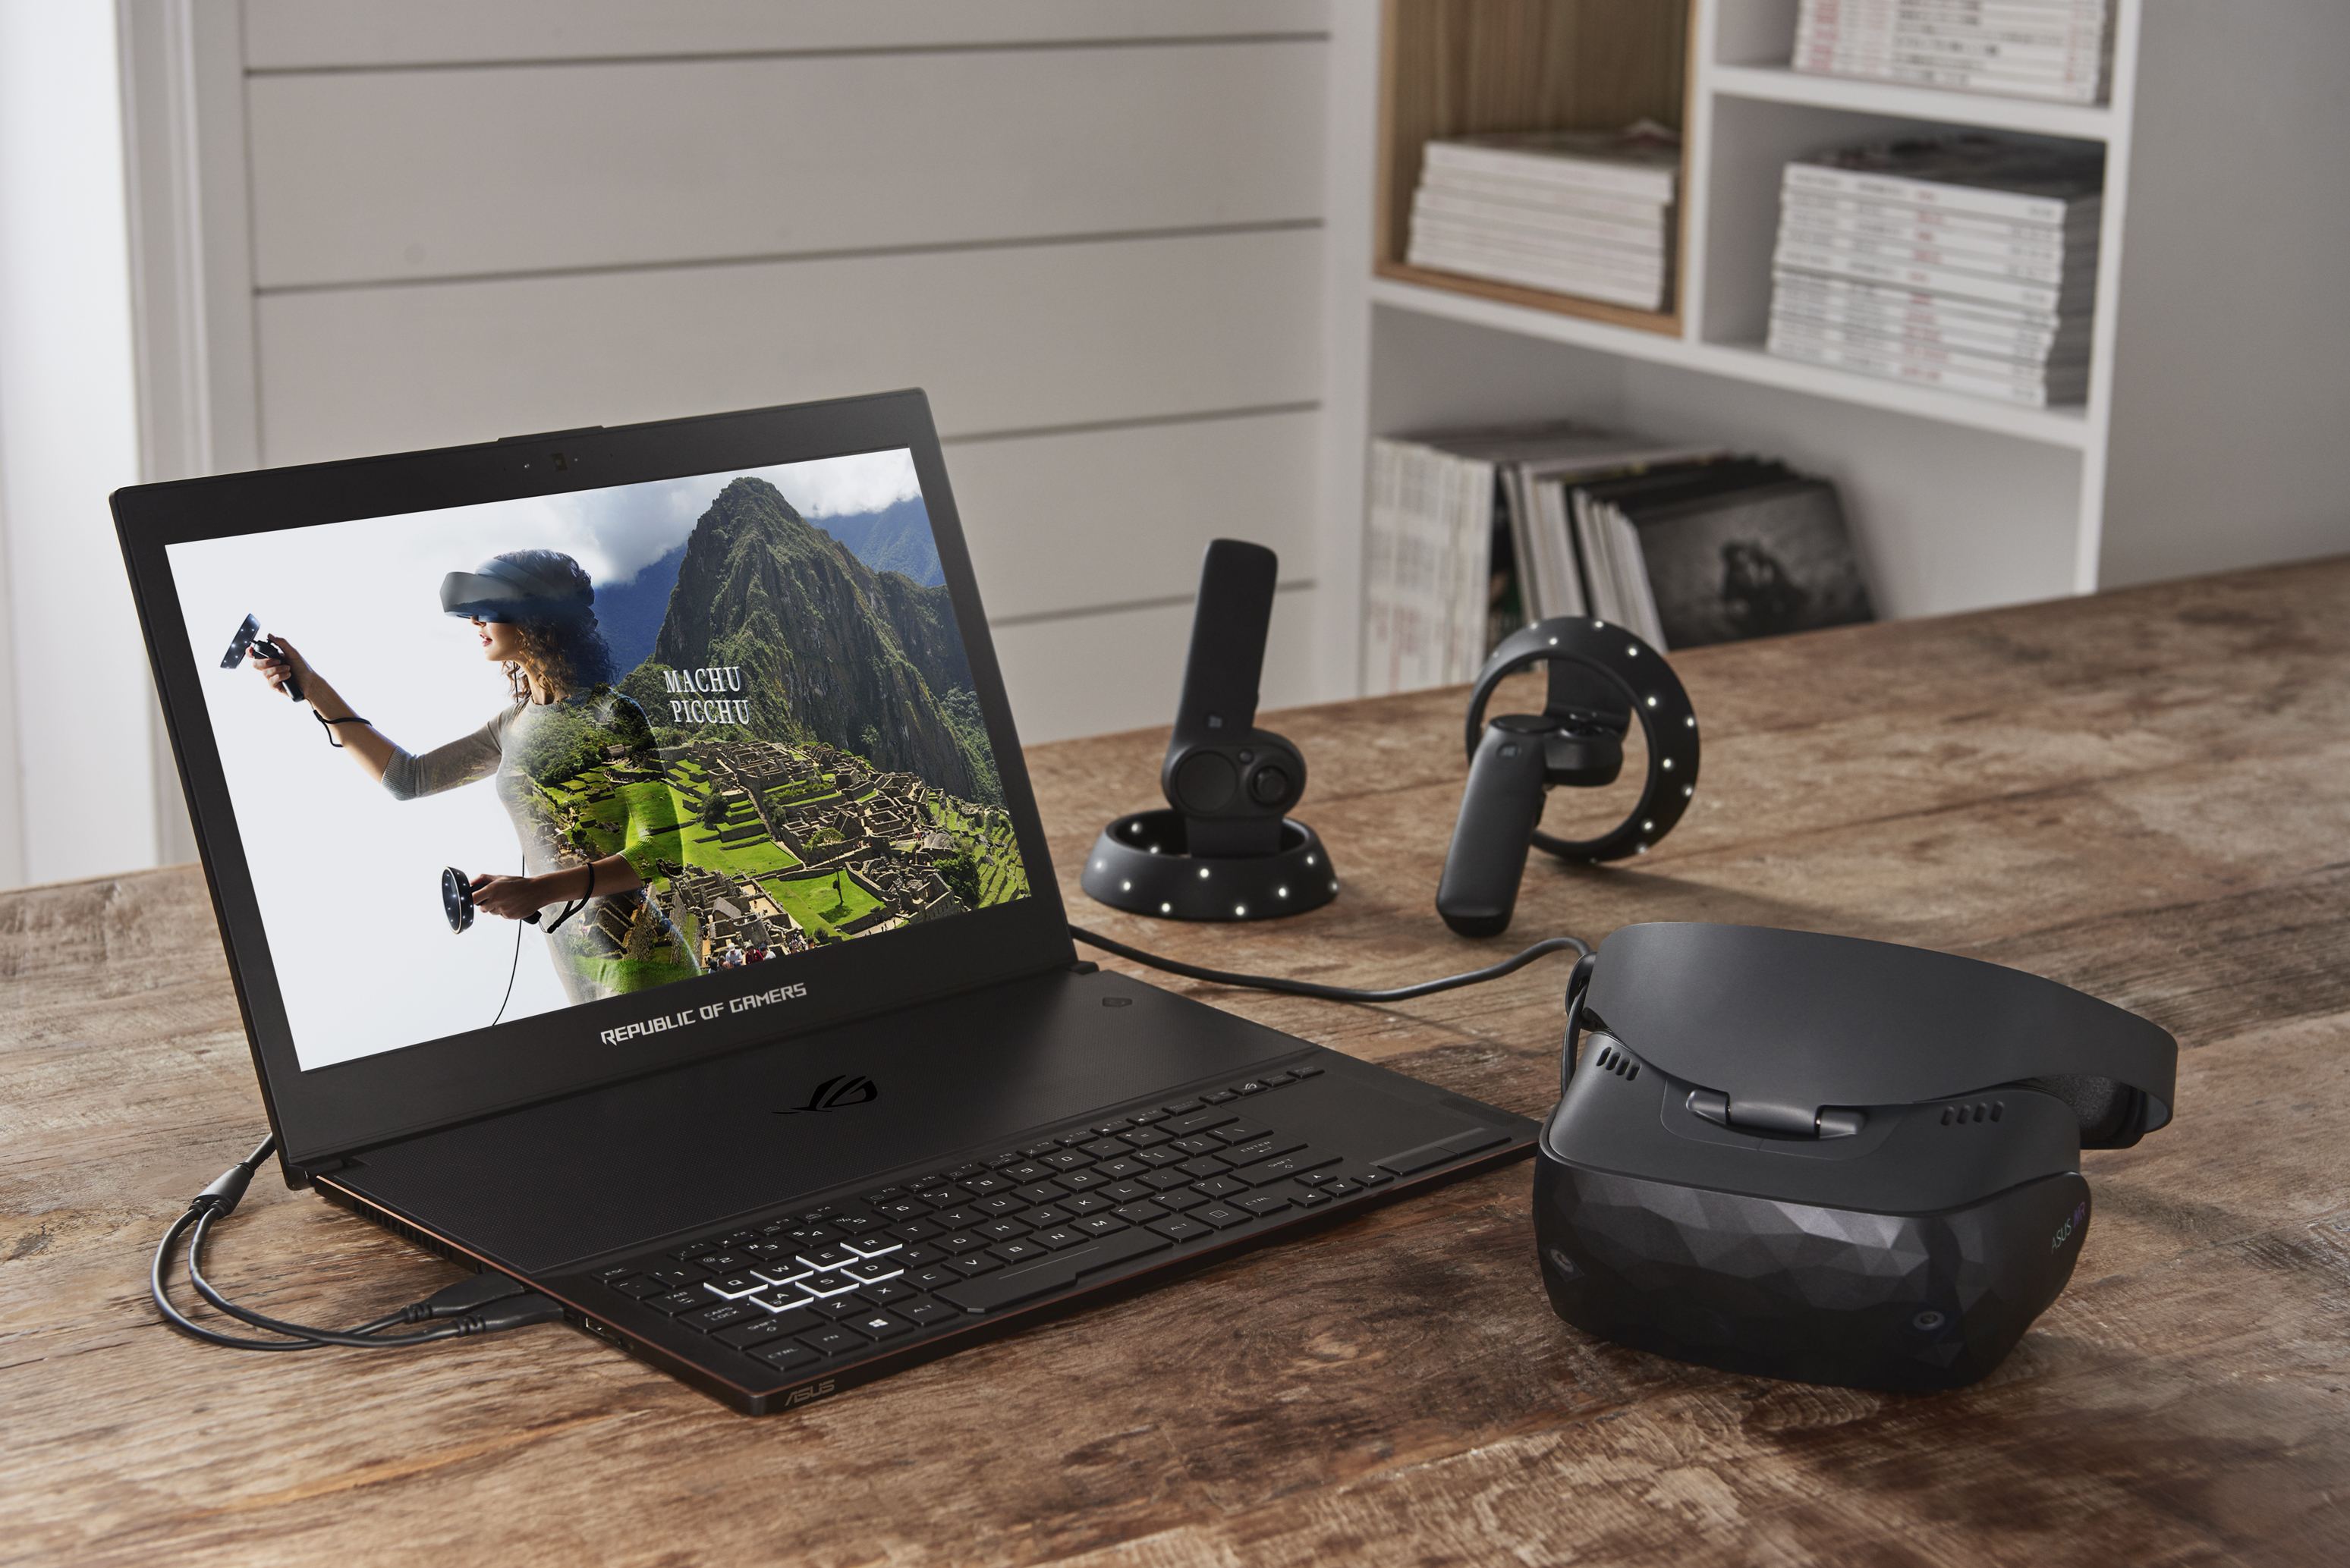 Announcing the ASUS Windows Mixed Reality Headset in North